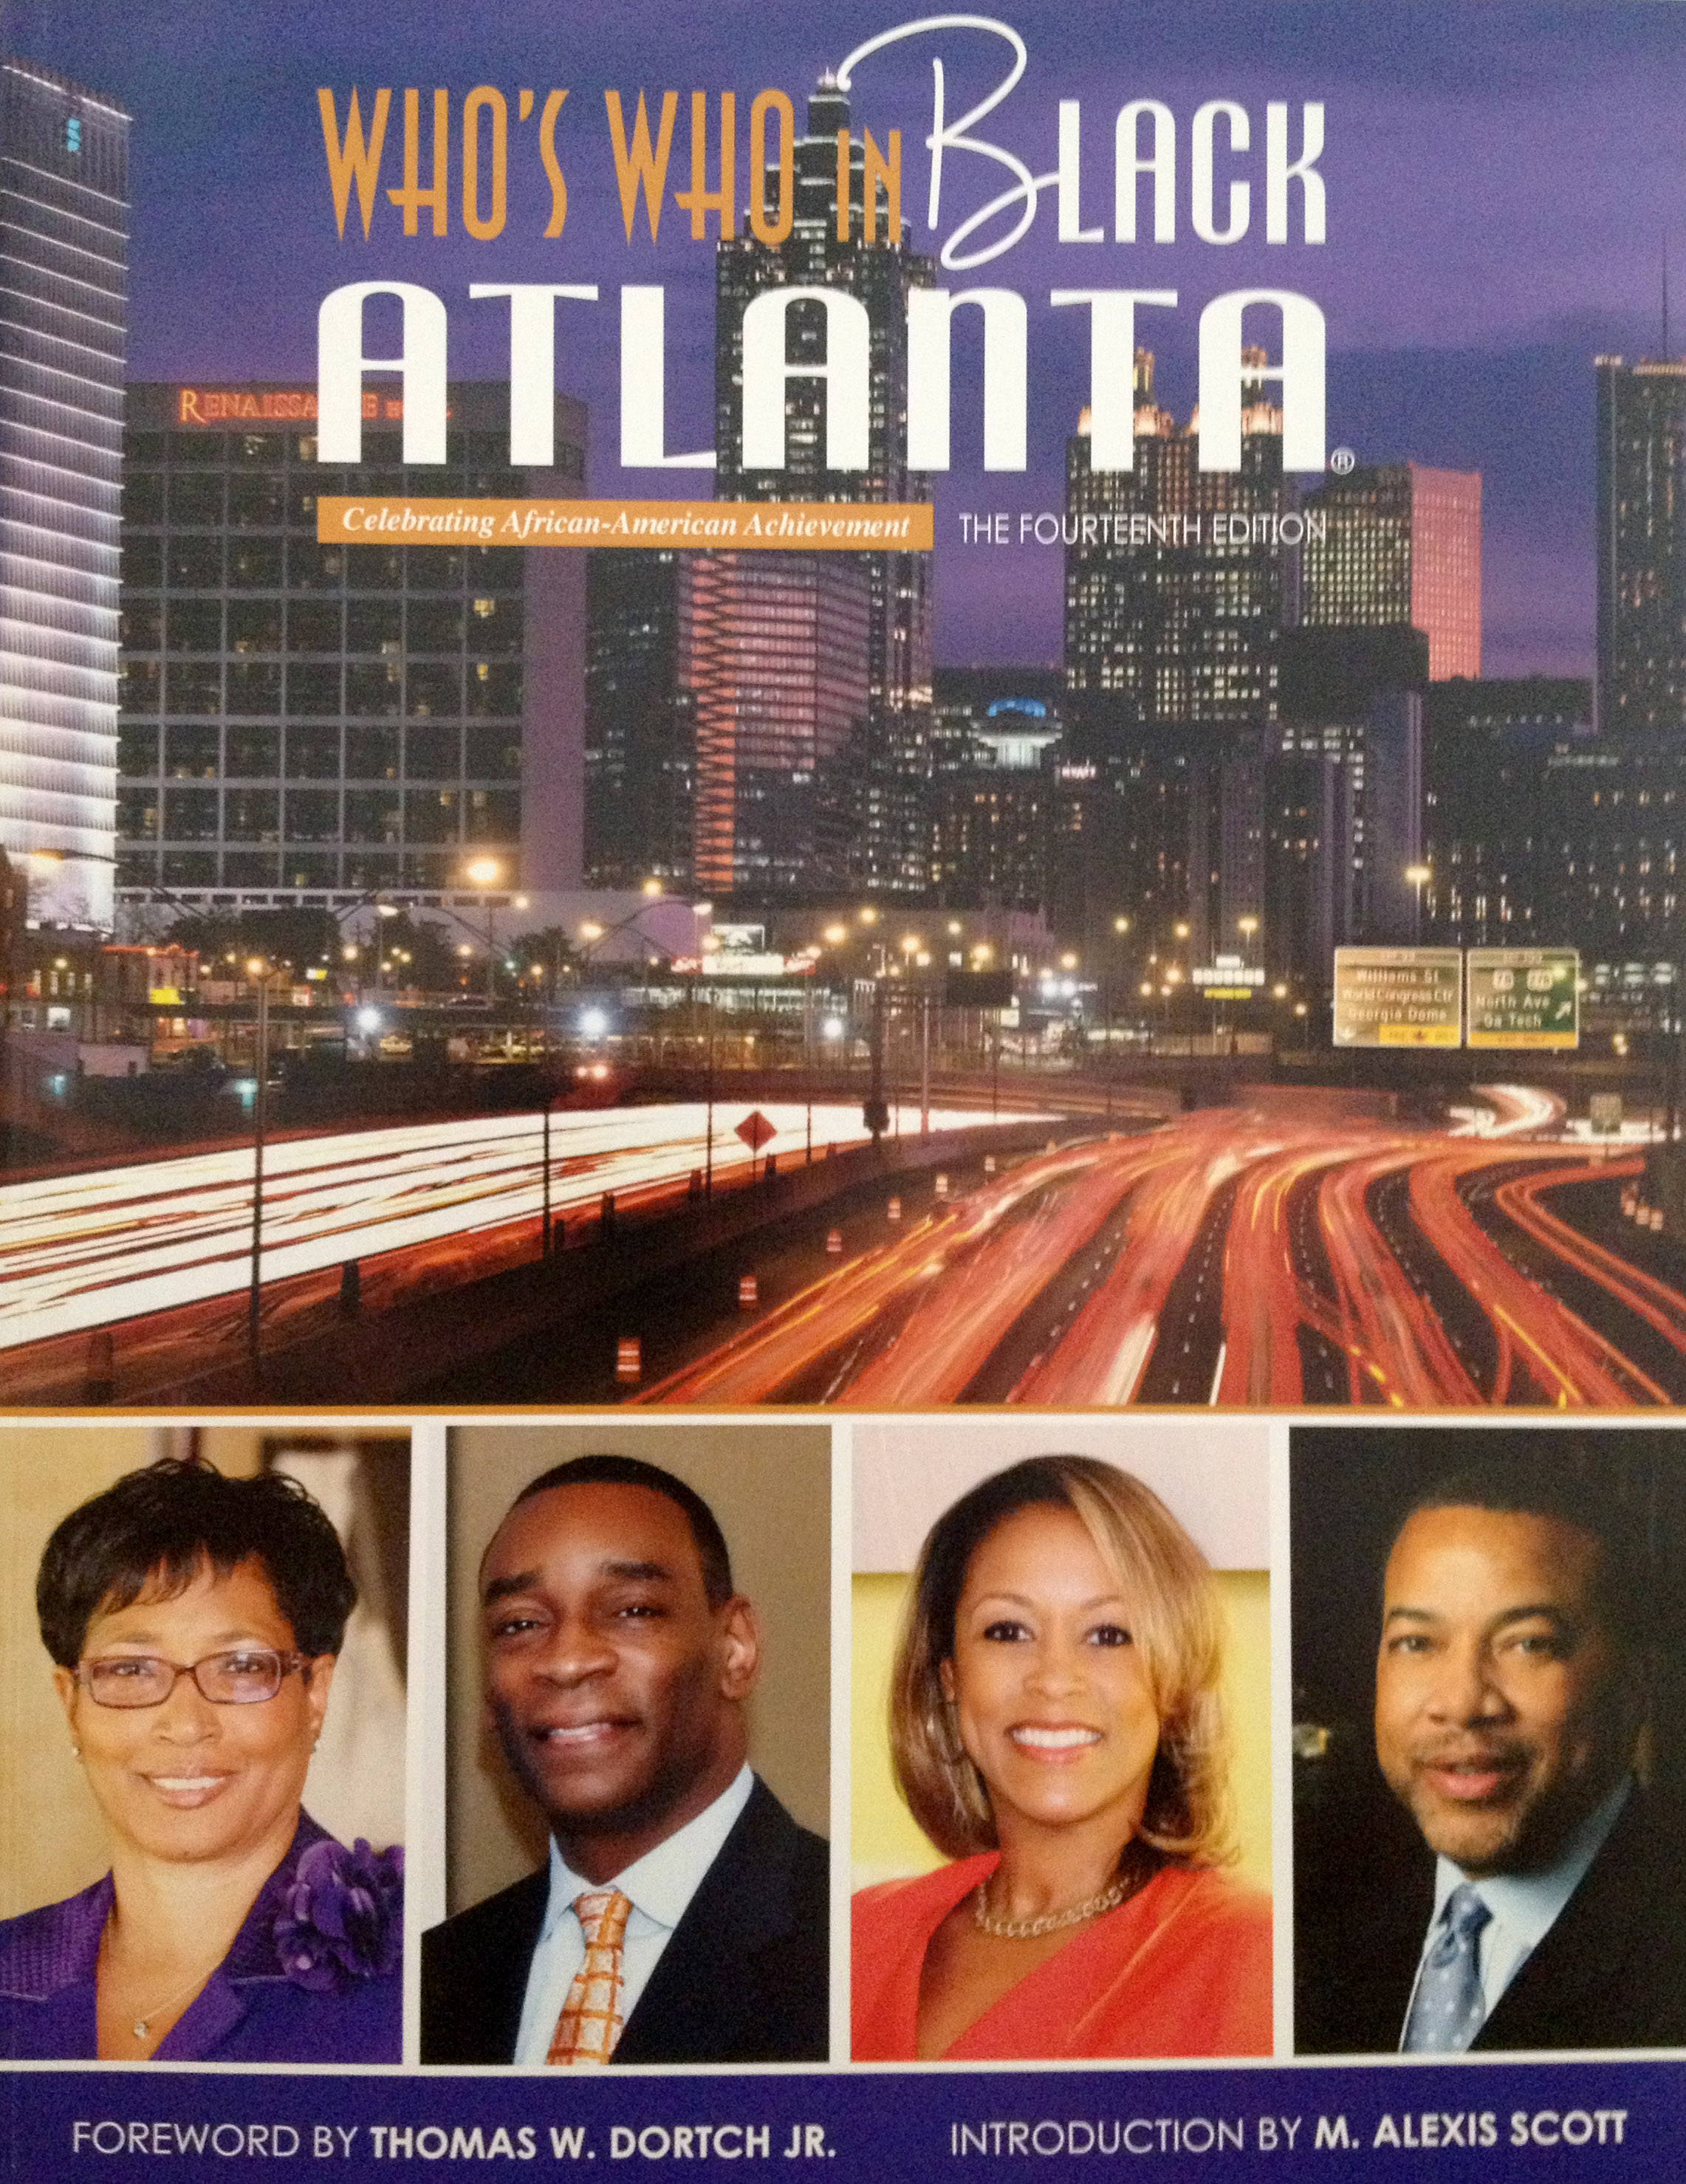 Who's Who In Black Atlanta Magazine Article